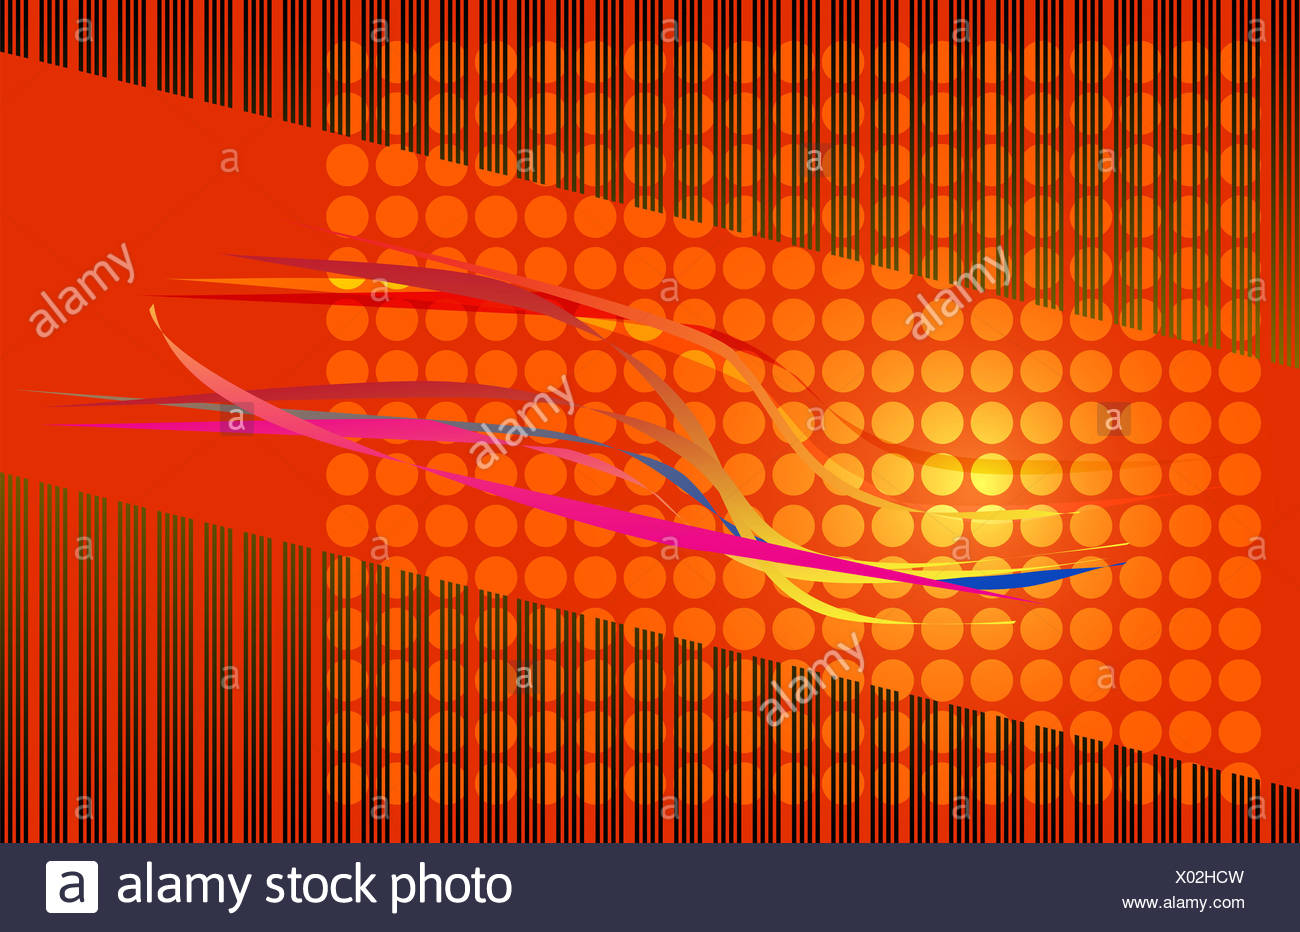 Pcb Background Stock Photos Images Alamy Printed Circuit Board Infographic Orange Image